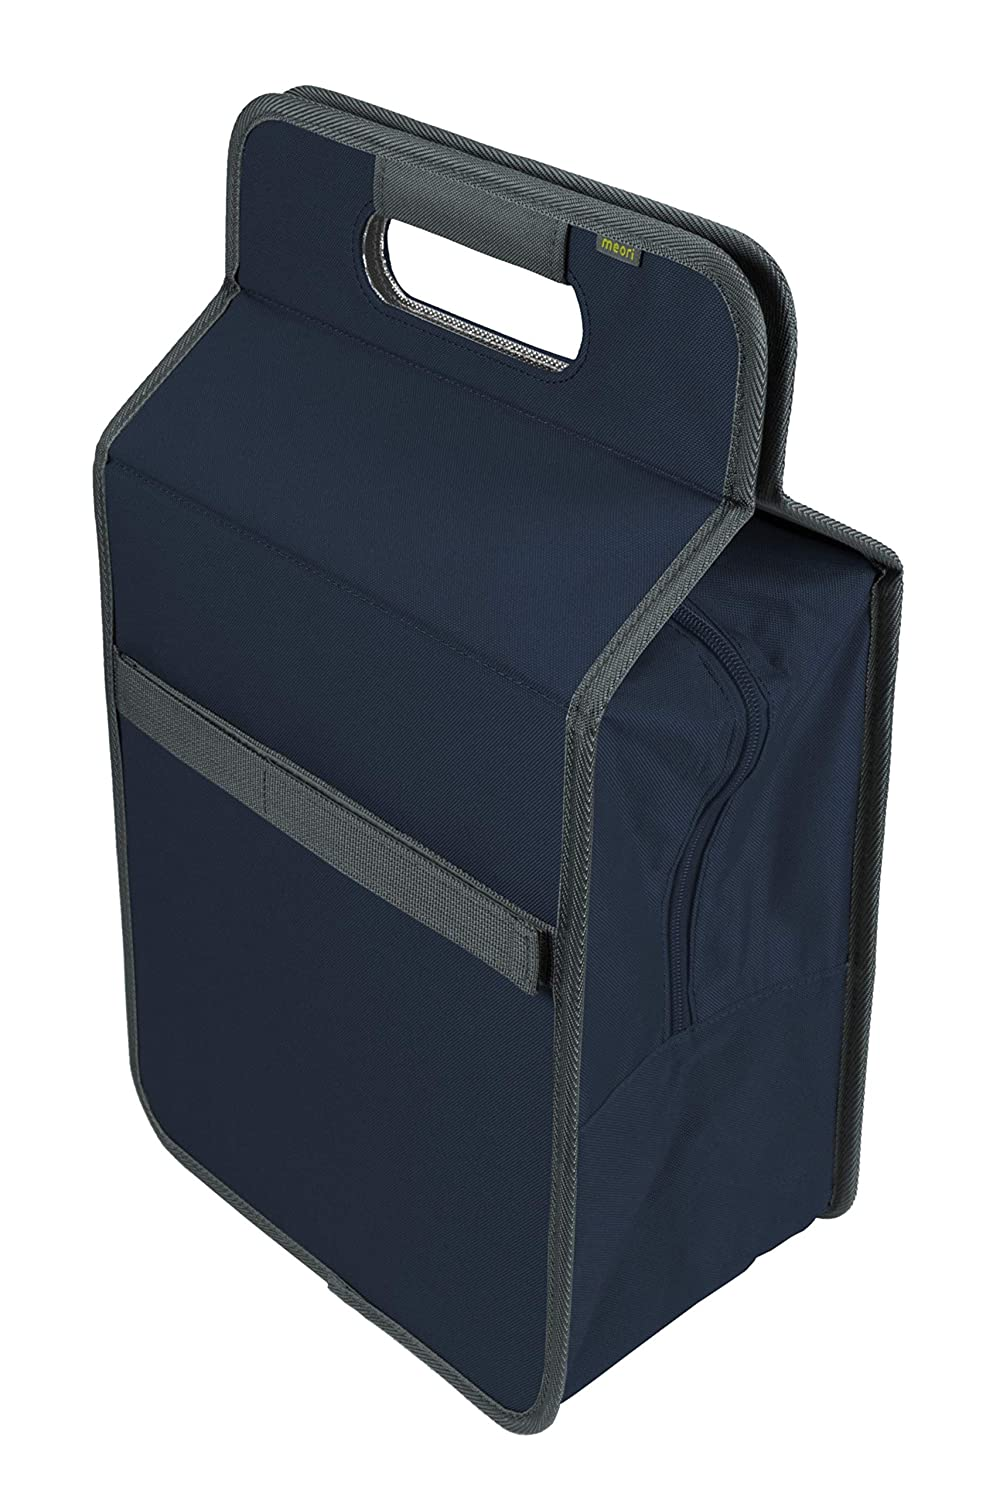 Meori Foldable Cooler Bag L with Bottle Insert Navy Blue Plain